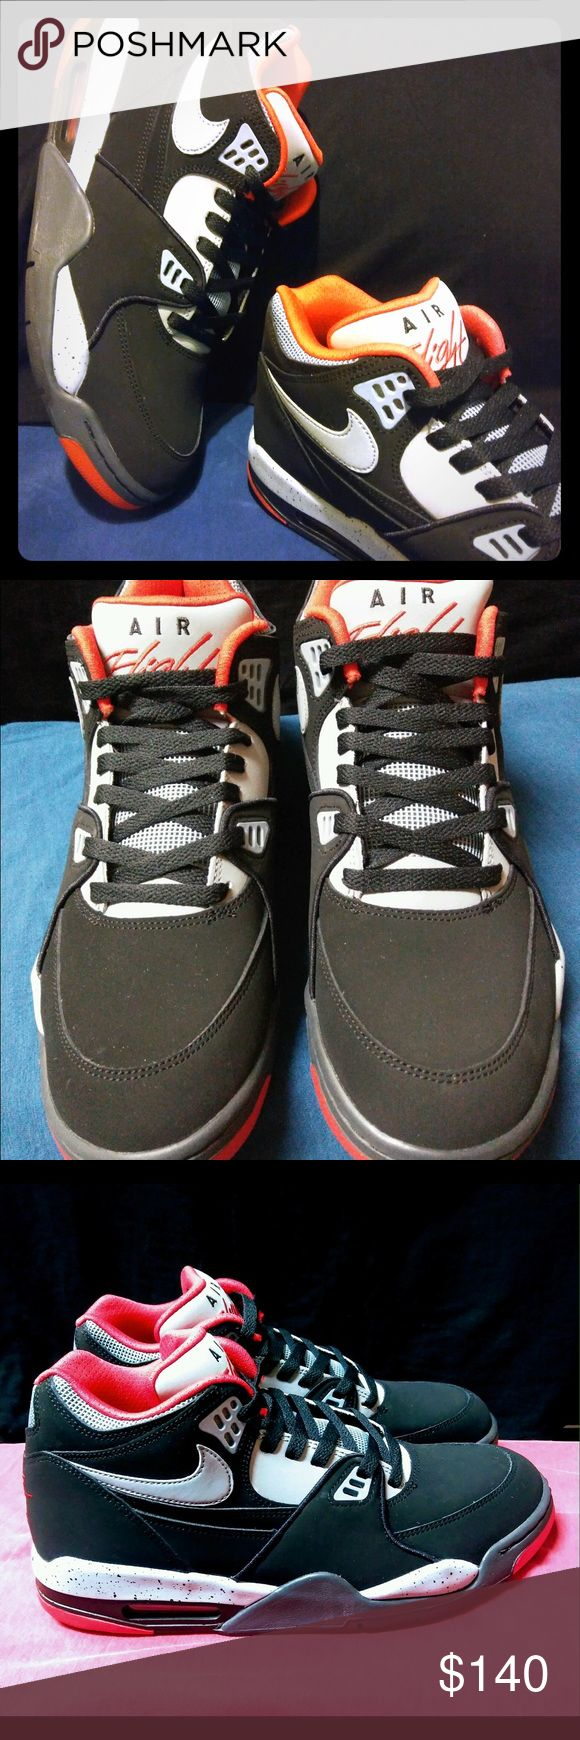 "Nike Air Flight 89 Black Grey New Nike Air Flight 89 Black Grey Red J pack ""Cement"" 100% authentic. Very rare and a sought after colorway. A Bonafide Classic !! Never been worn. These are flawless. Size 10.5 Be glad to  post more pics to authenticate. Nike Shoes Athletic Shoes"